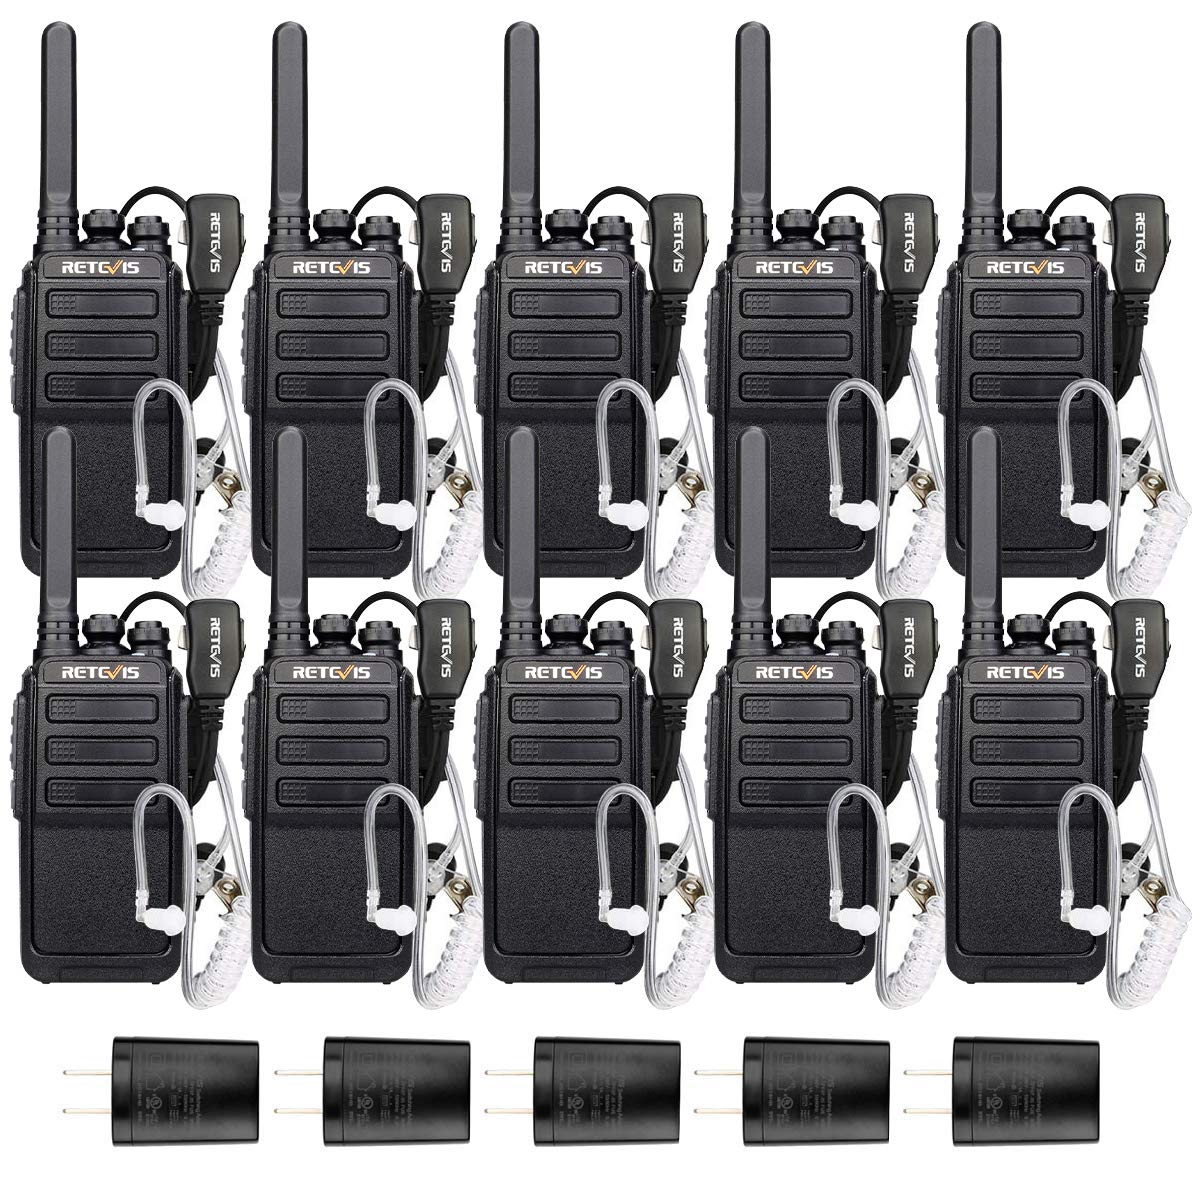 Retevis RT28 Walkie-Talkies for Adults Two-Way Radios Long Range Rechargeable UHF Emergency Alarm VOX 2 Way Radios with Earpiece 2 Pin 10 Pack